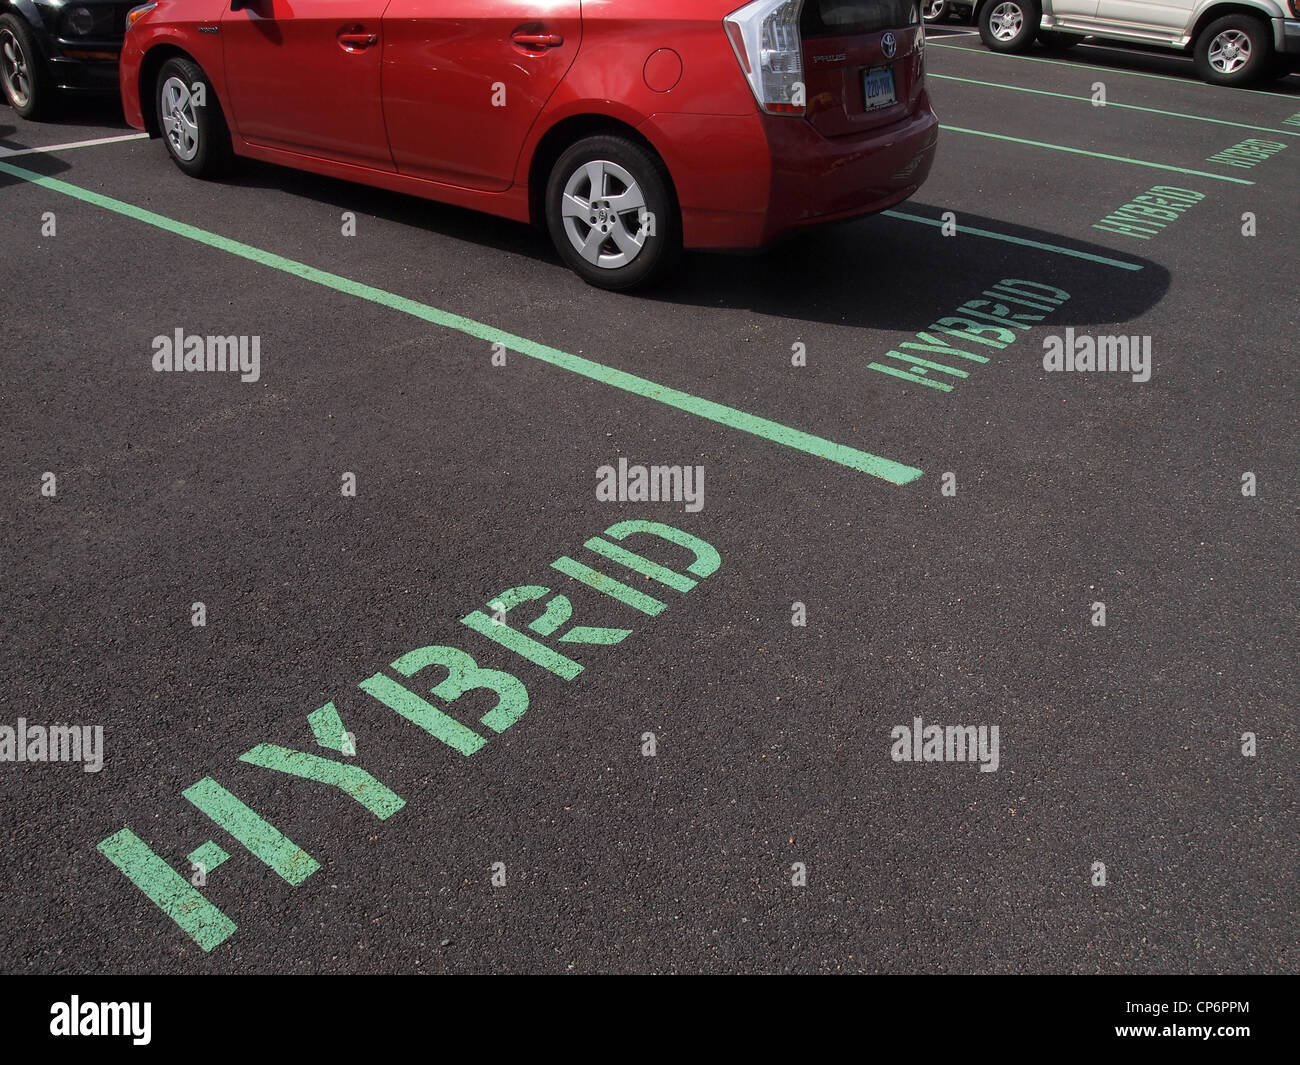 Toyota Prius parked in a space reserved for hybrid vehicles, New York, United States, March 8, 2012, © Katharine - Stock Image